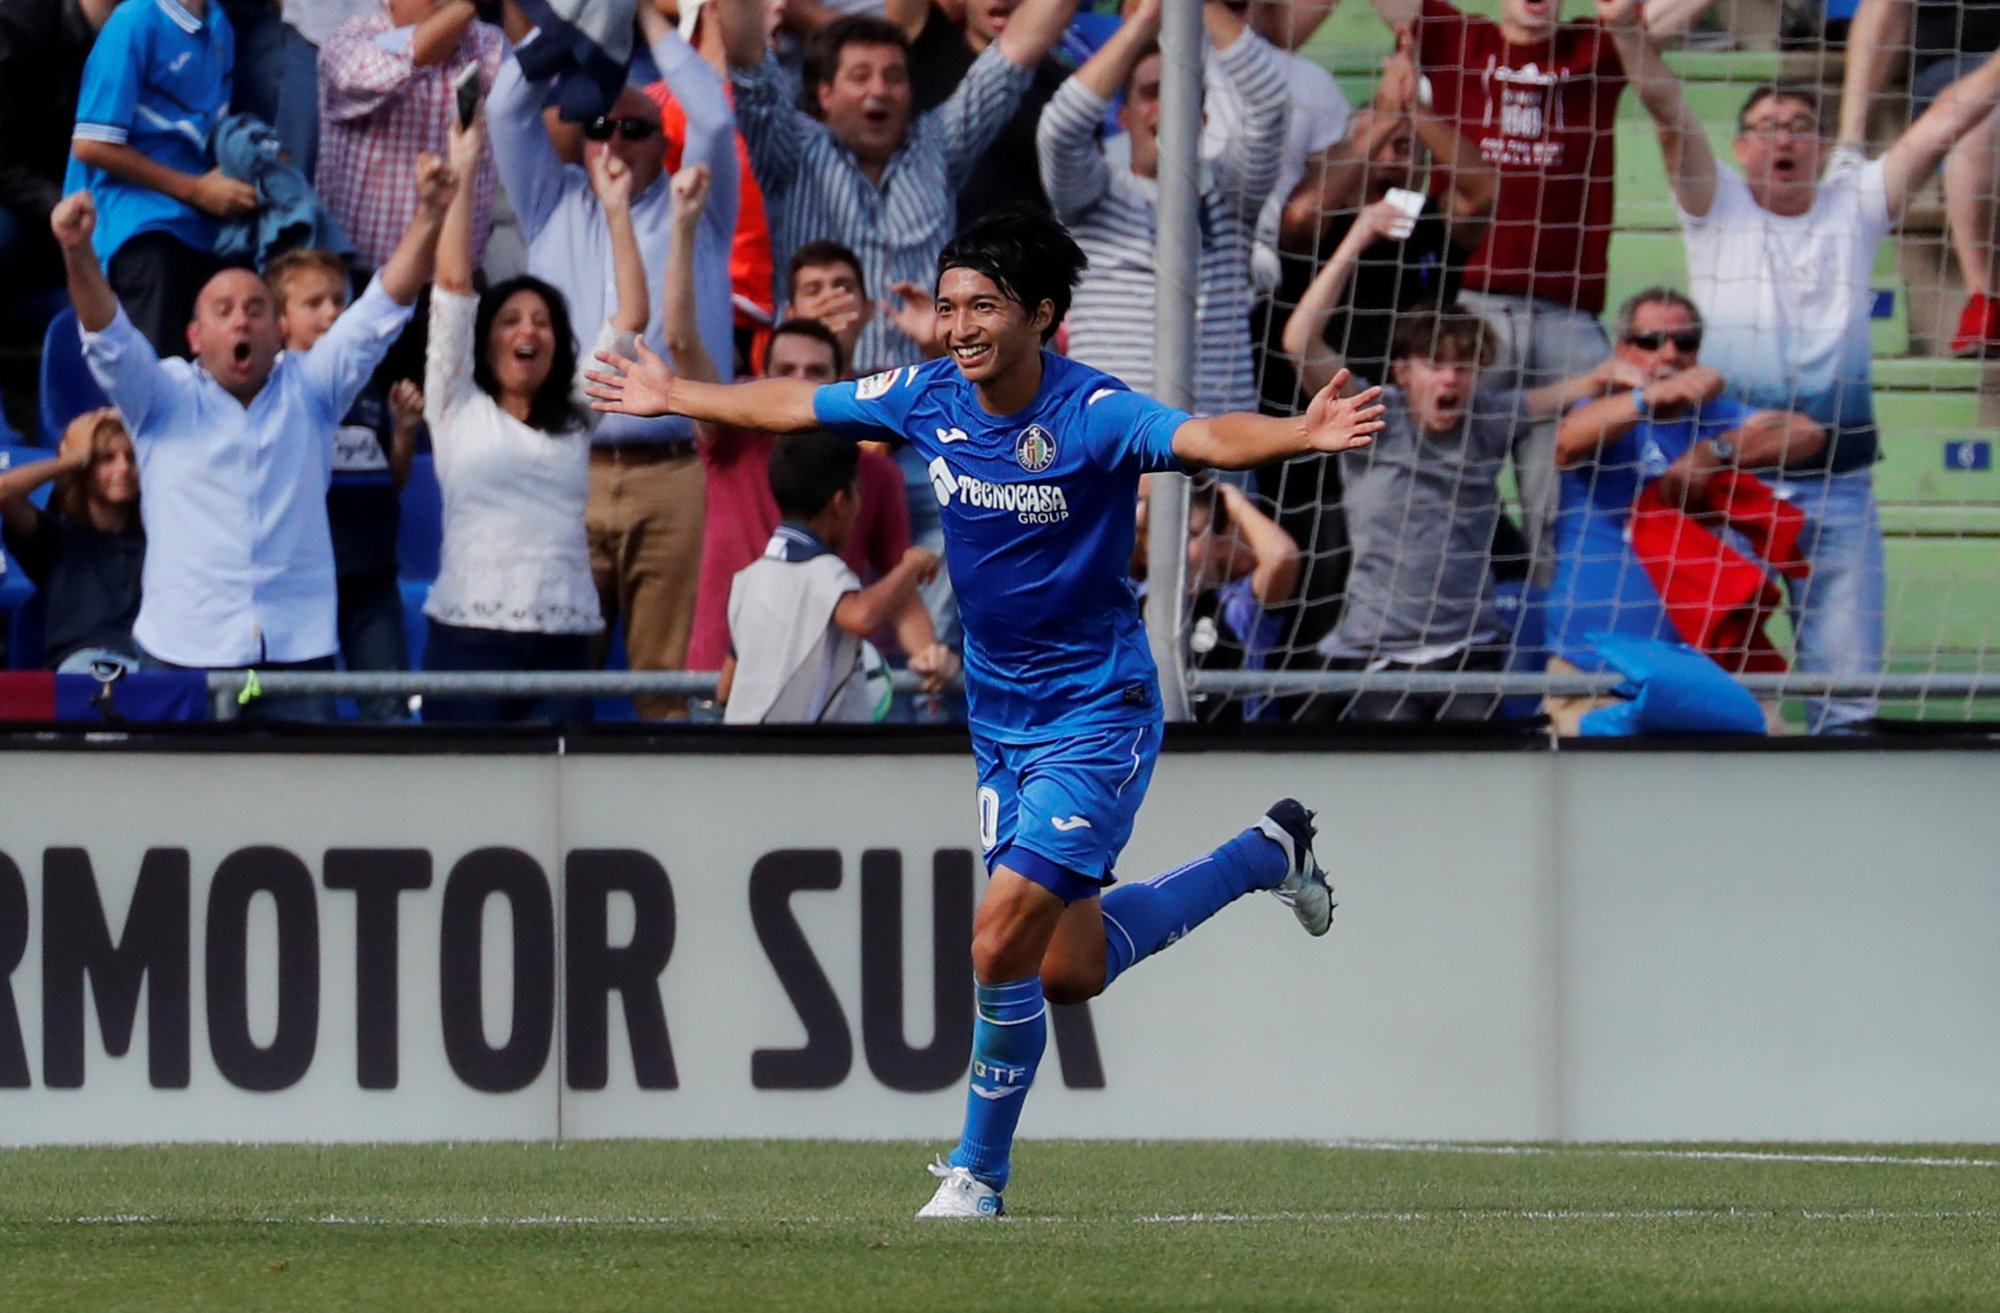 Getafe's Gaku Shibasaki celebrates after scoring the opening goal of his club's match against Barcelona on Saturday. Barcelona won 2-1. | REUTERS